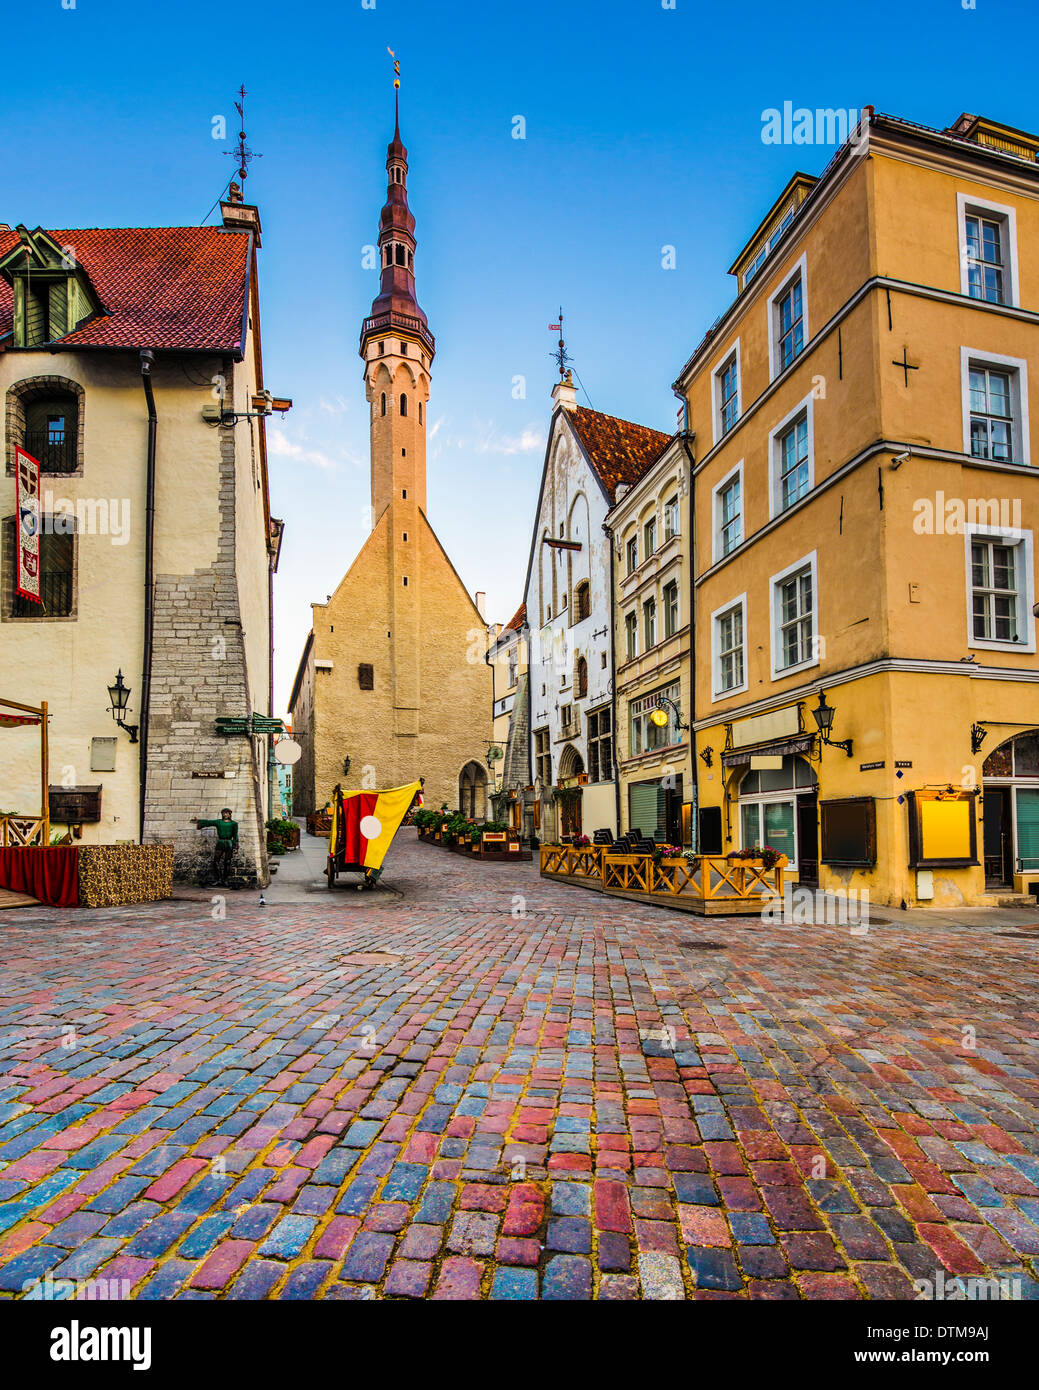 Tallinn, Estonia old city at old town hall. - Stock Image